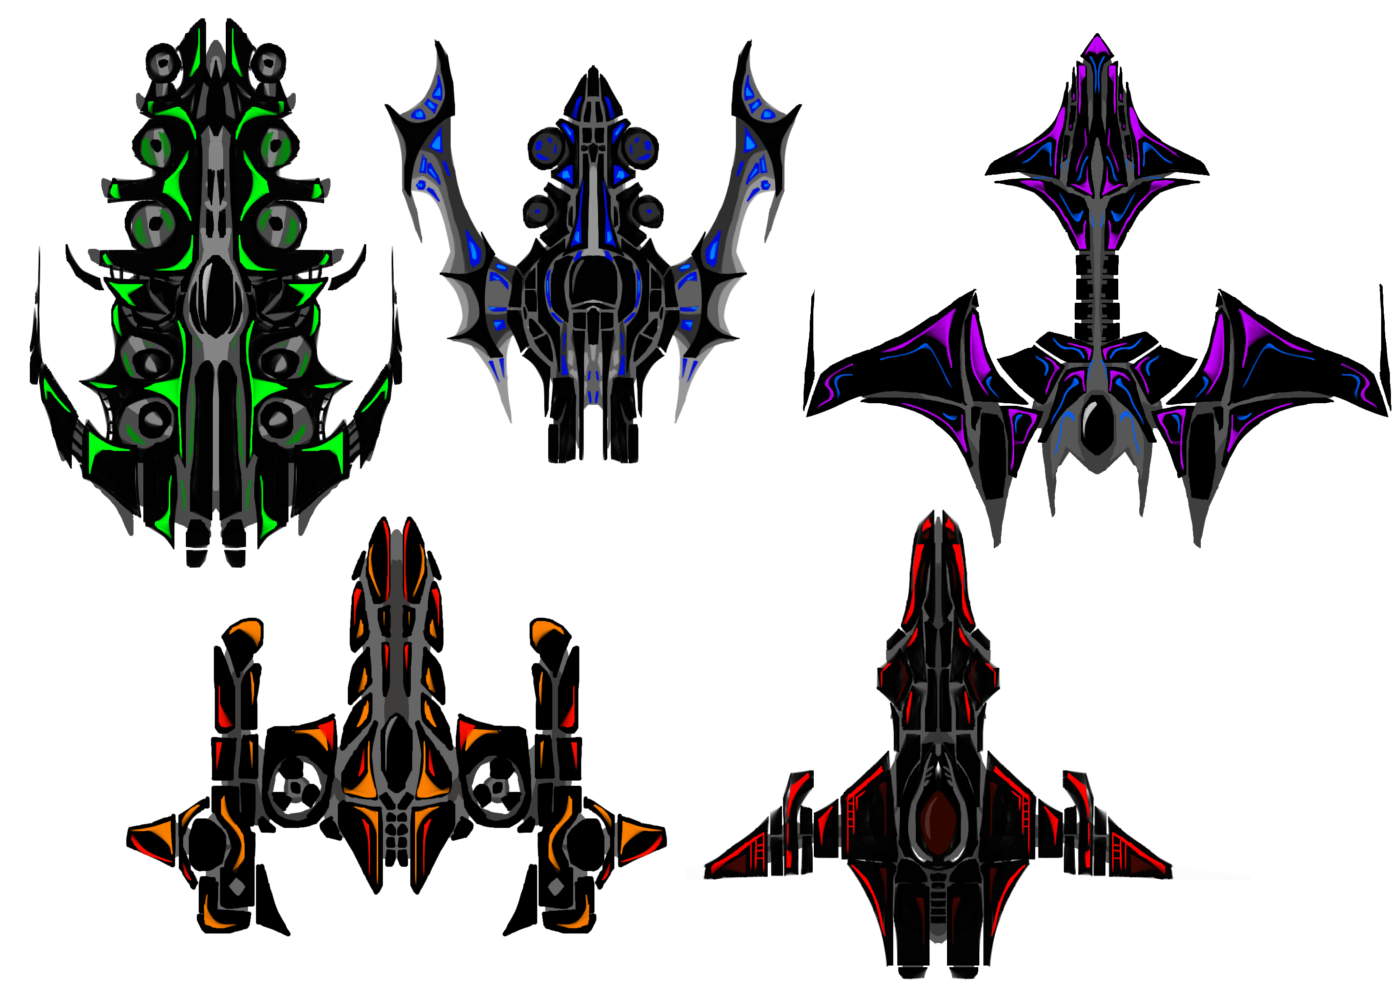 MillionthVector: Spaceship Fighter Concepts